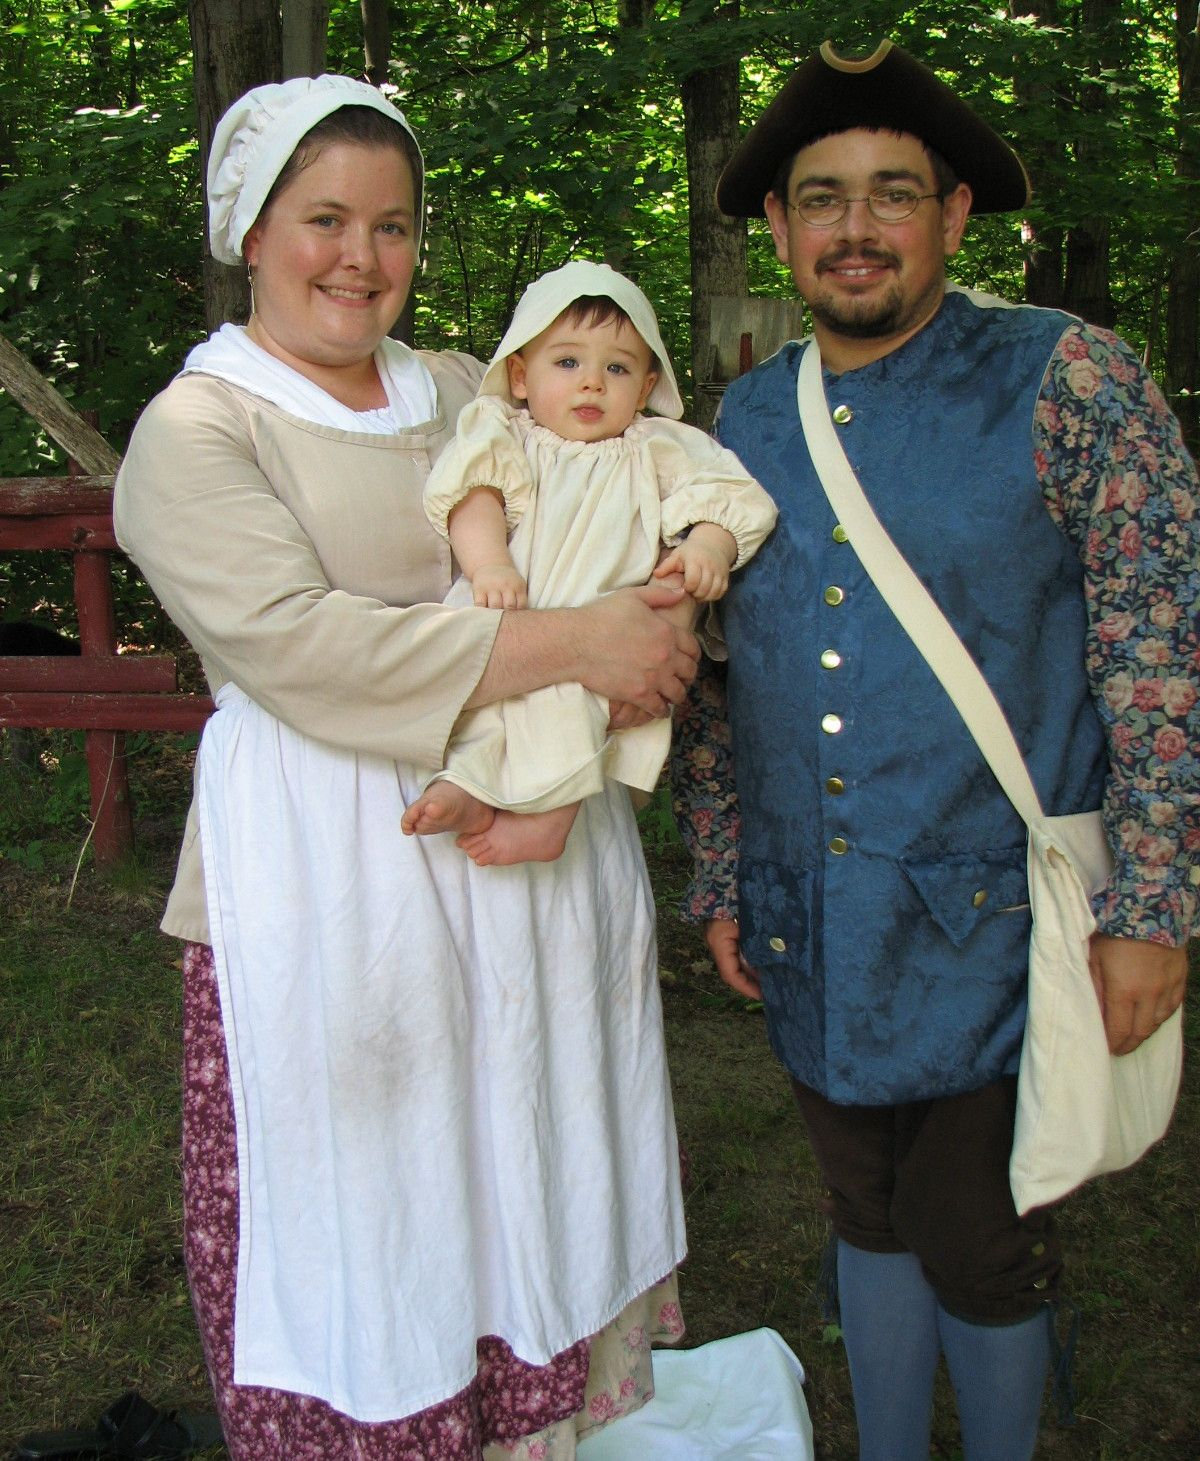 American Colonial Clothing